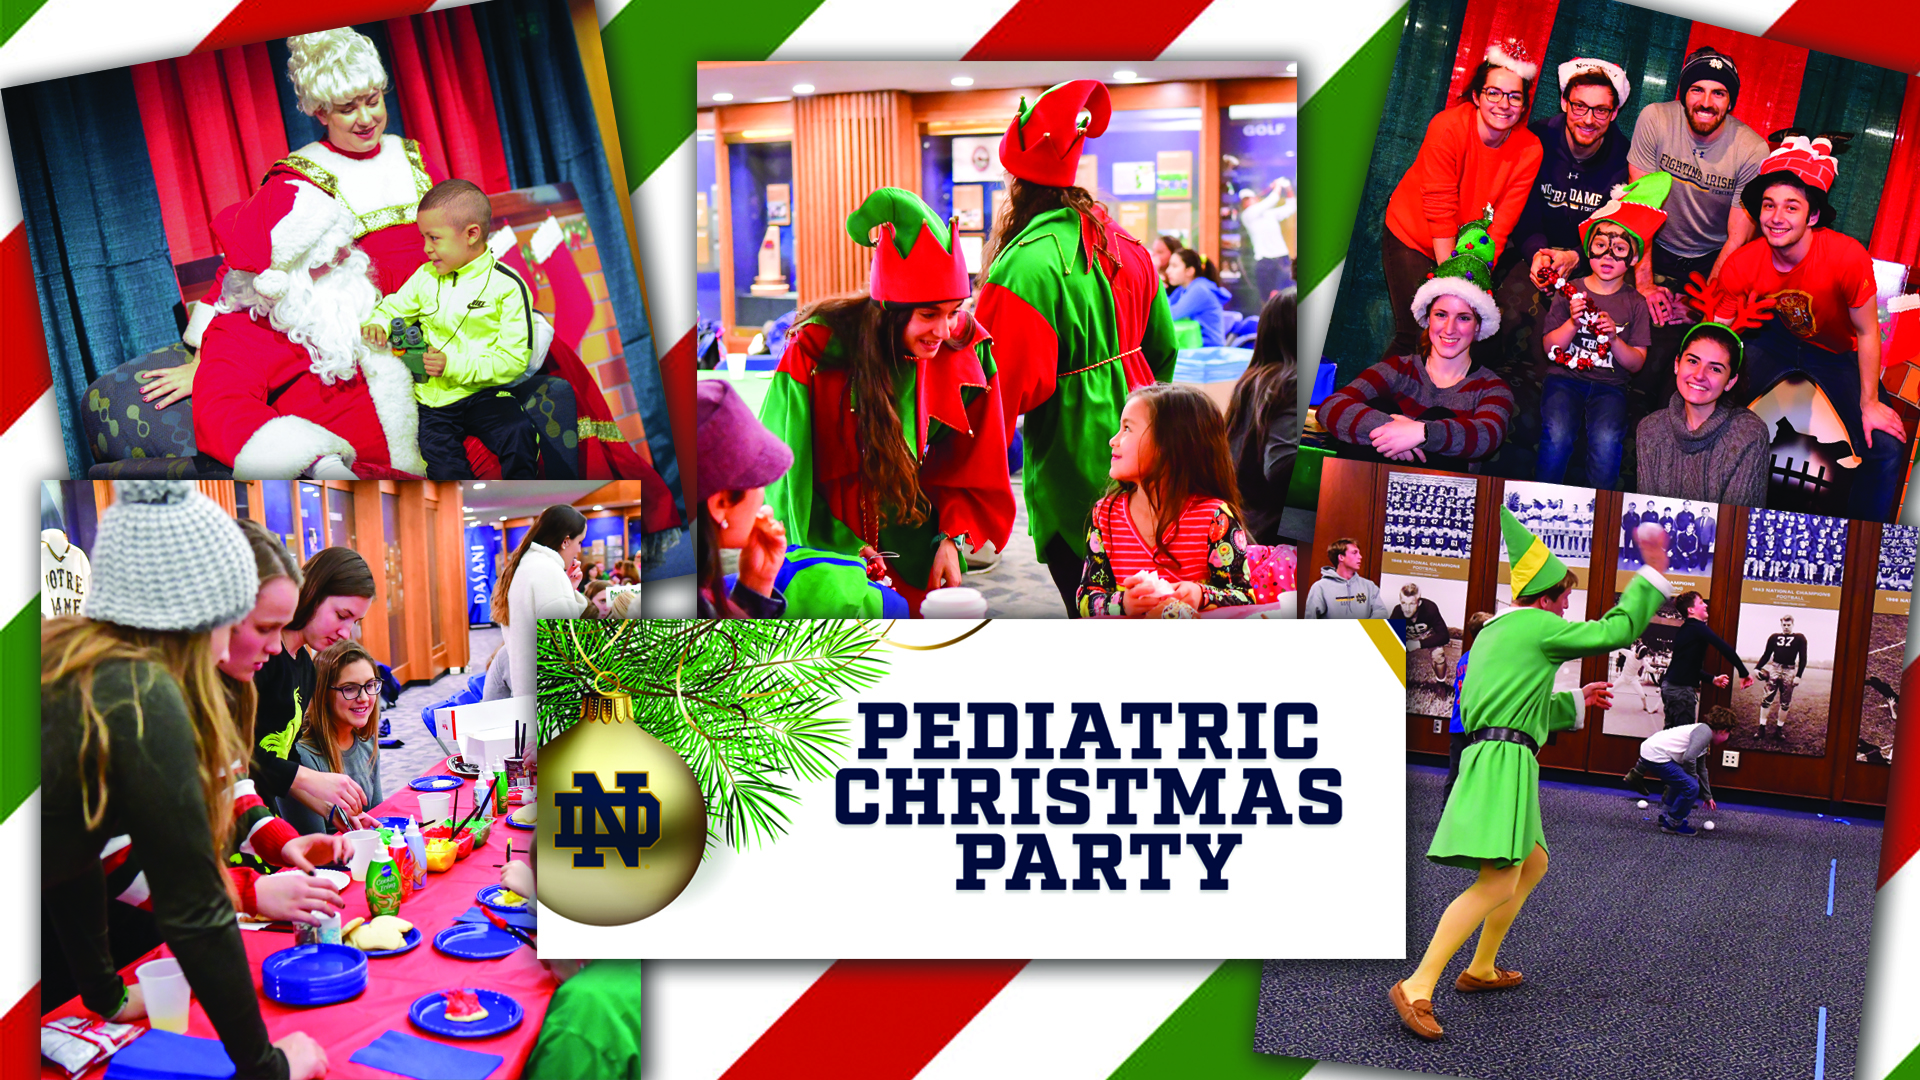 Pediatric Christmas Party